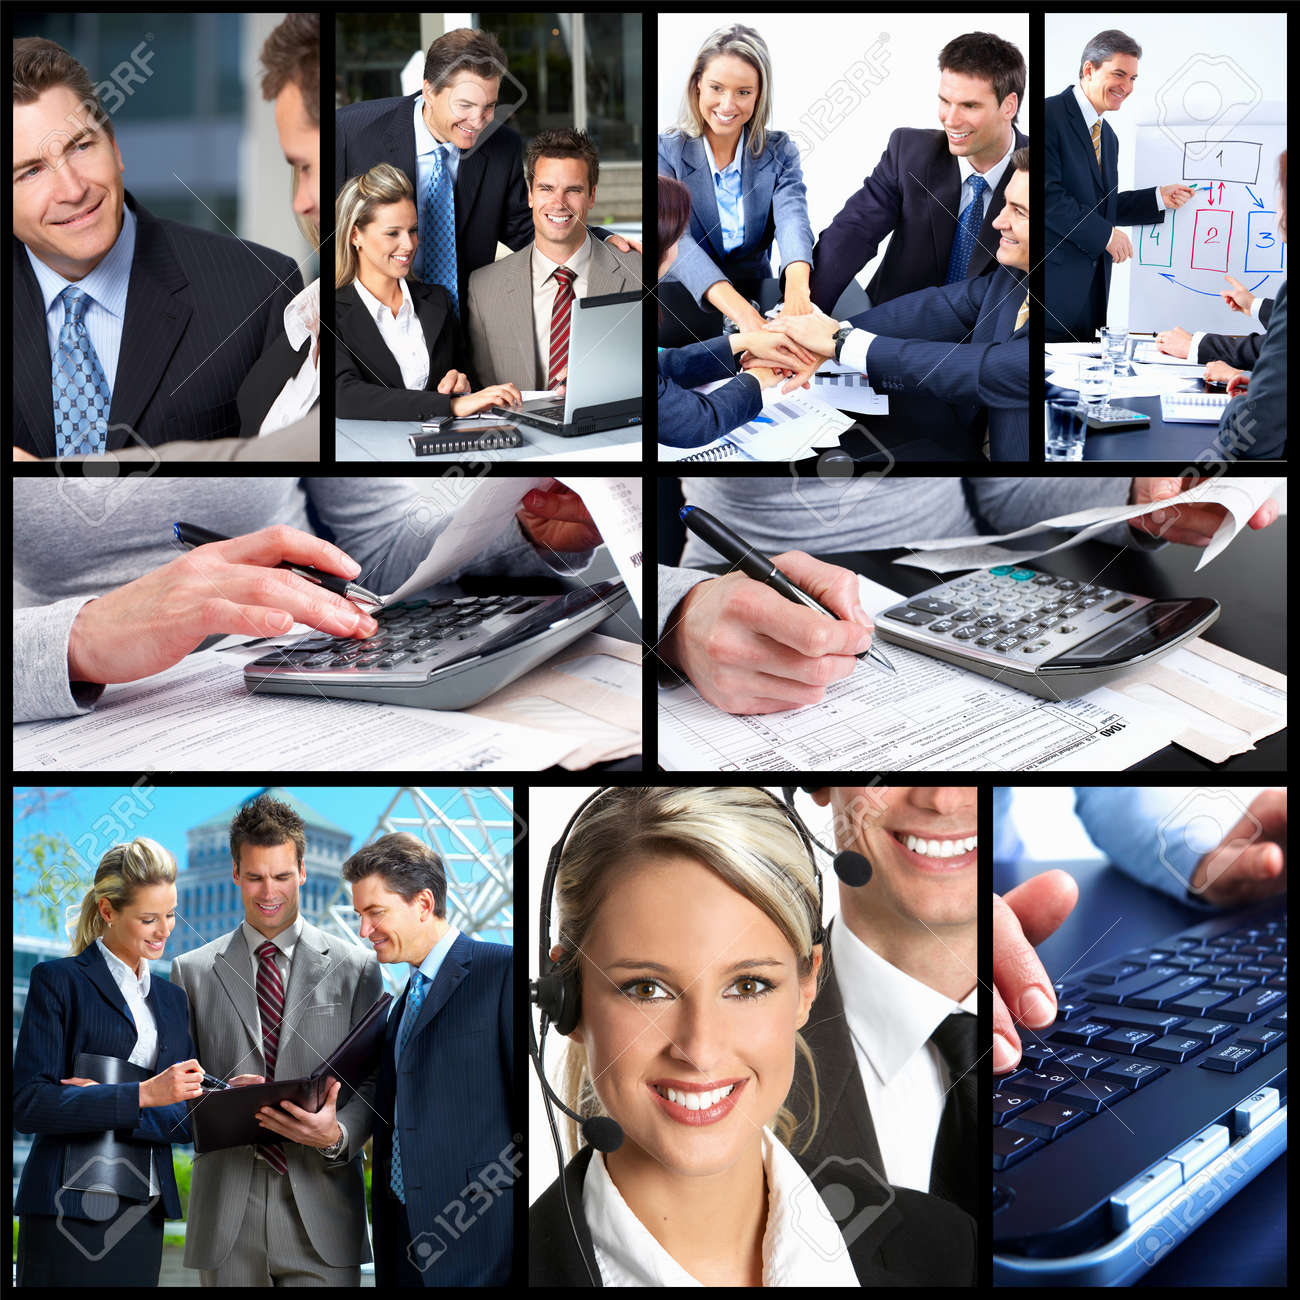 Business People Collage. Stock Photo, Picture And Royalty Free ...